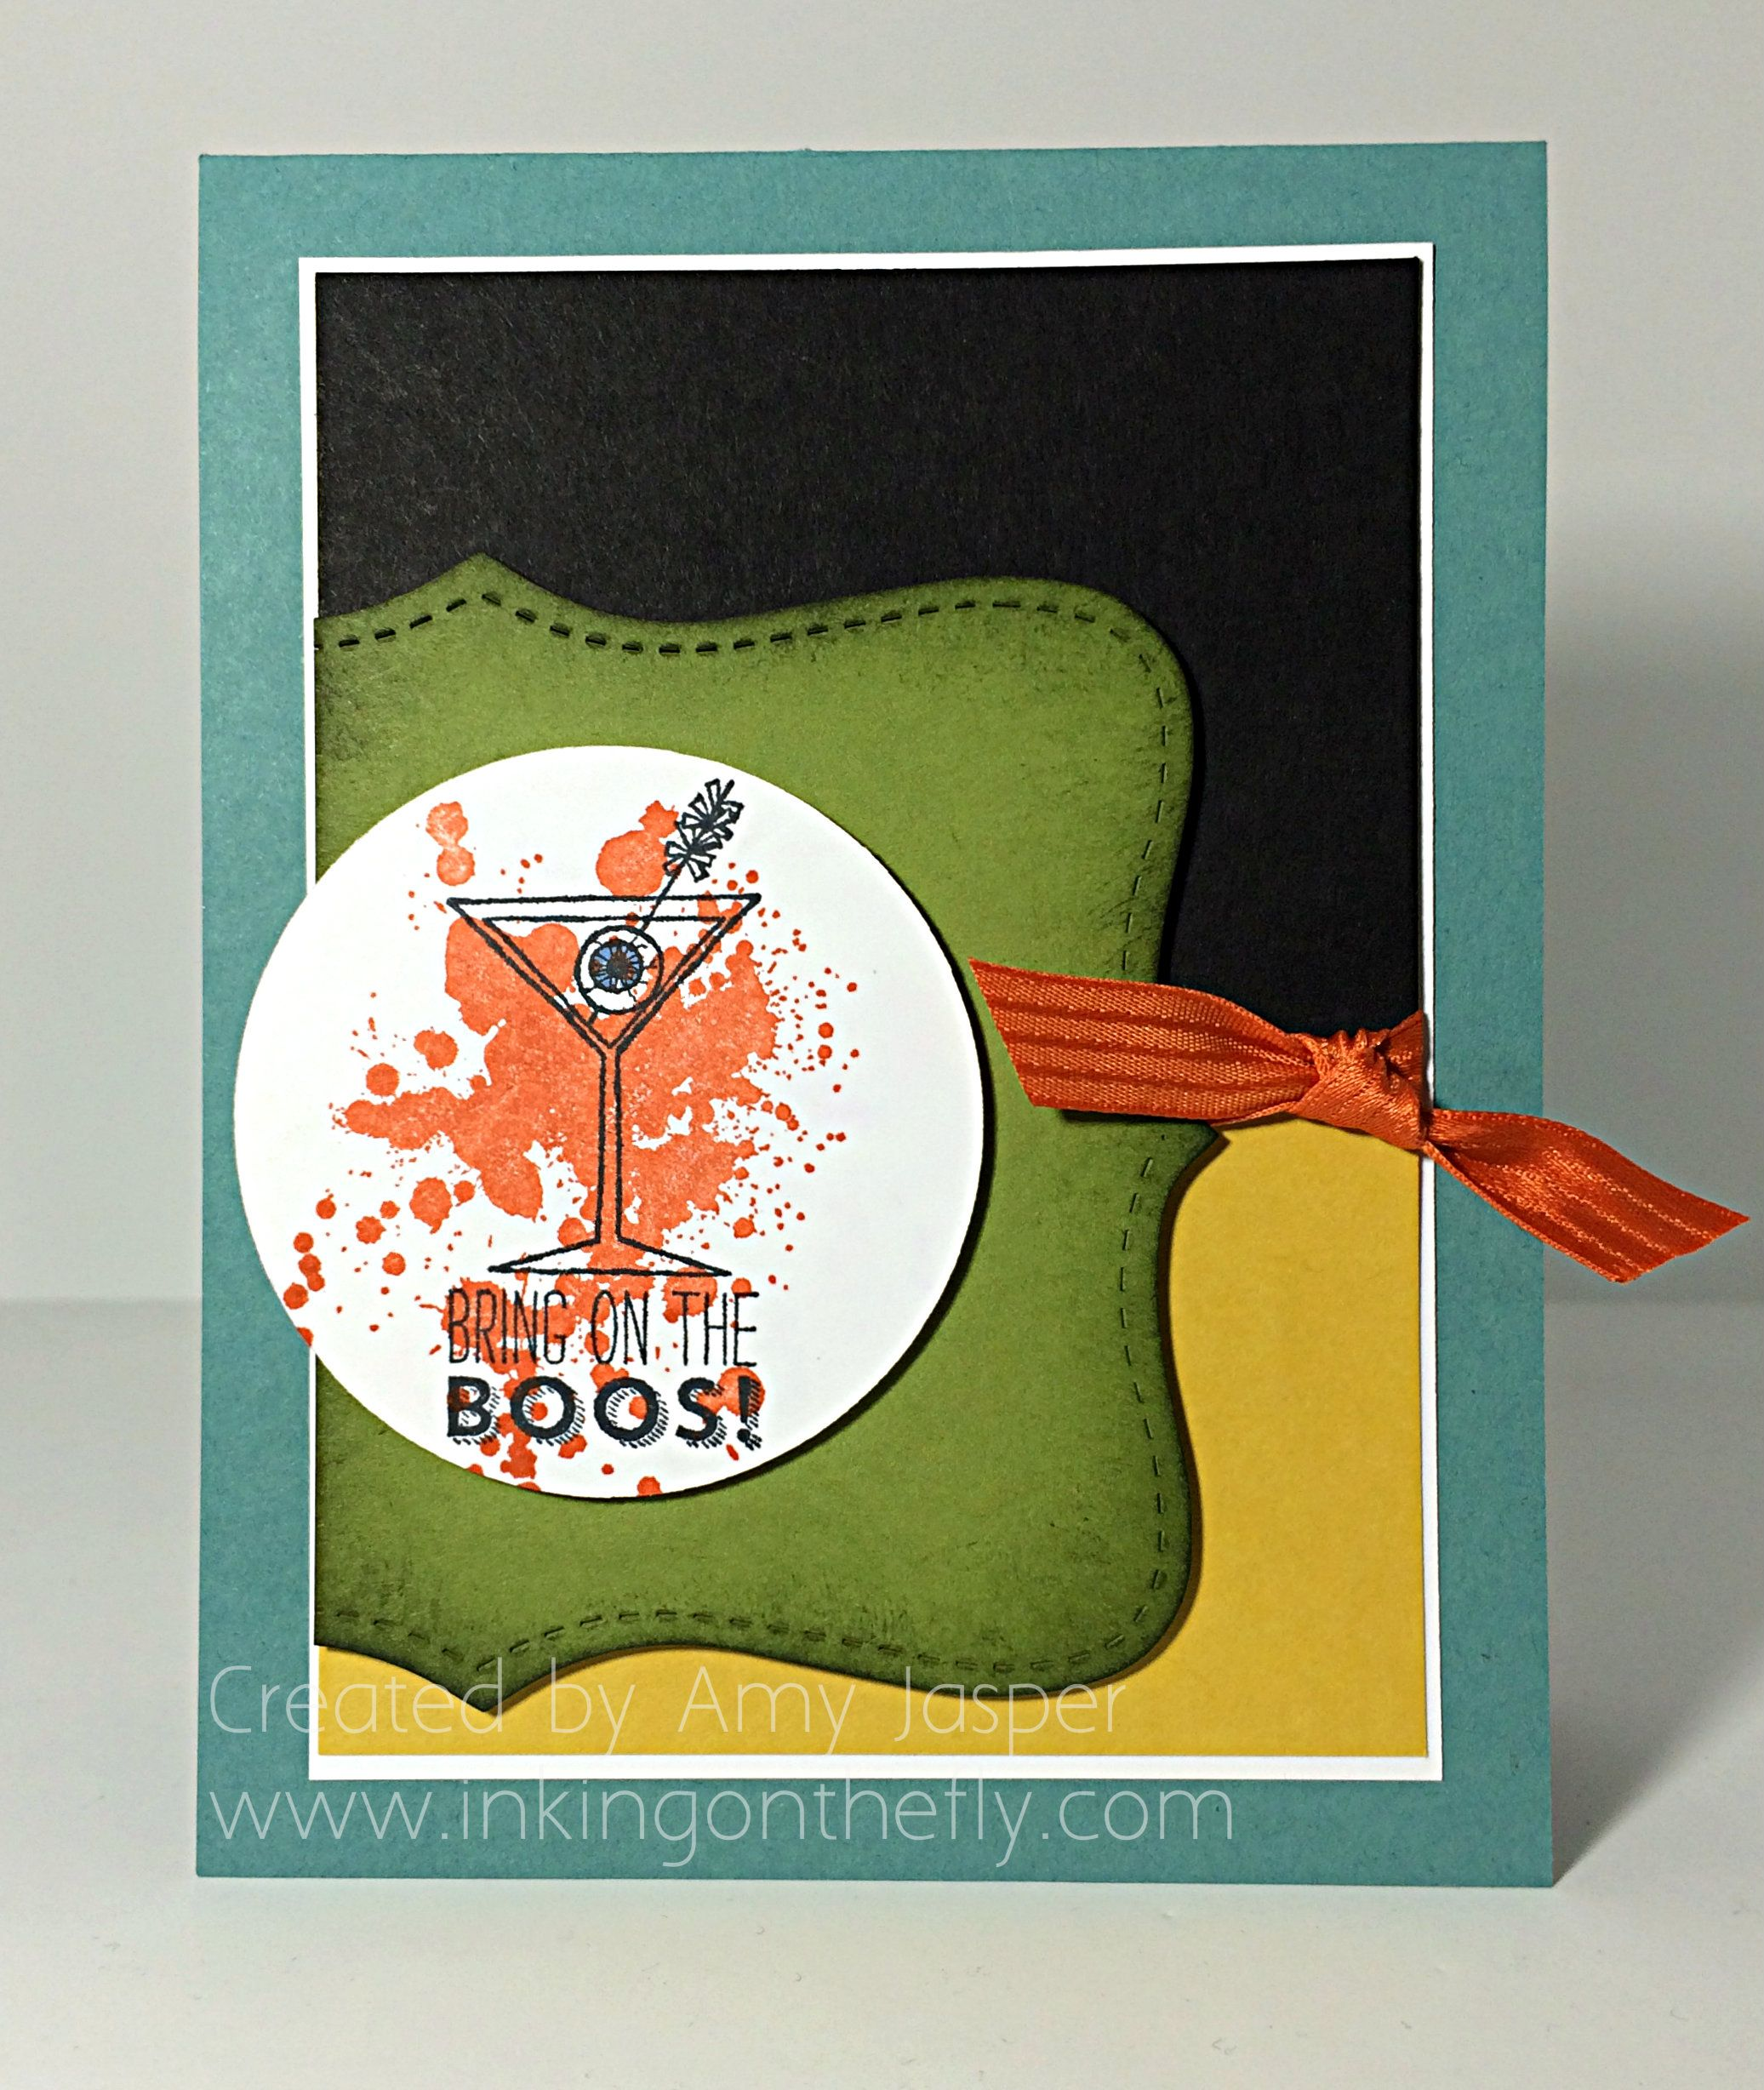 Fall Cheer card designed by Amy Jasper at www.inkingonthefly.com - using the Making Spirits Bright stamp set by Stampin' Up!